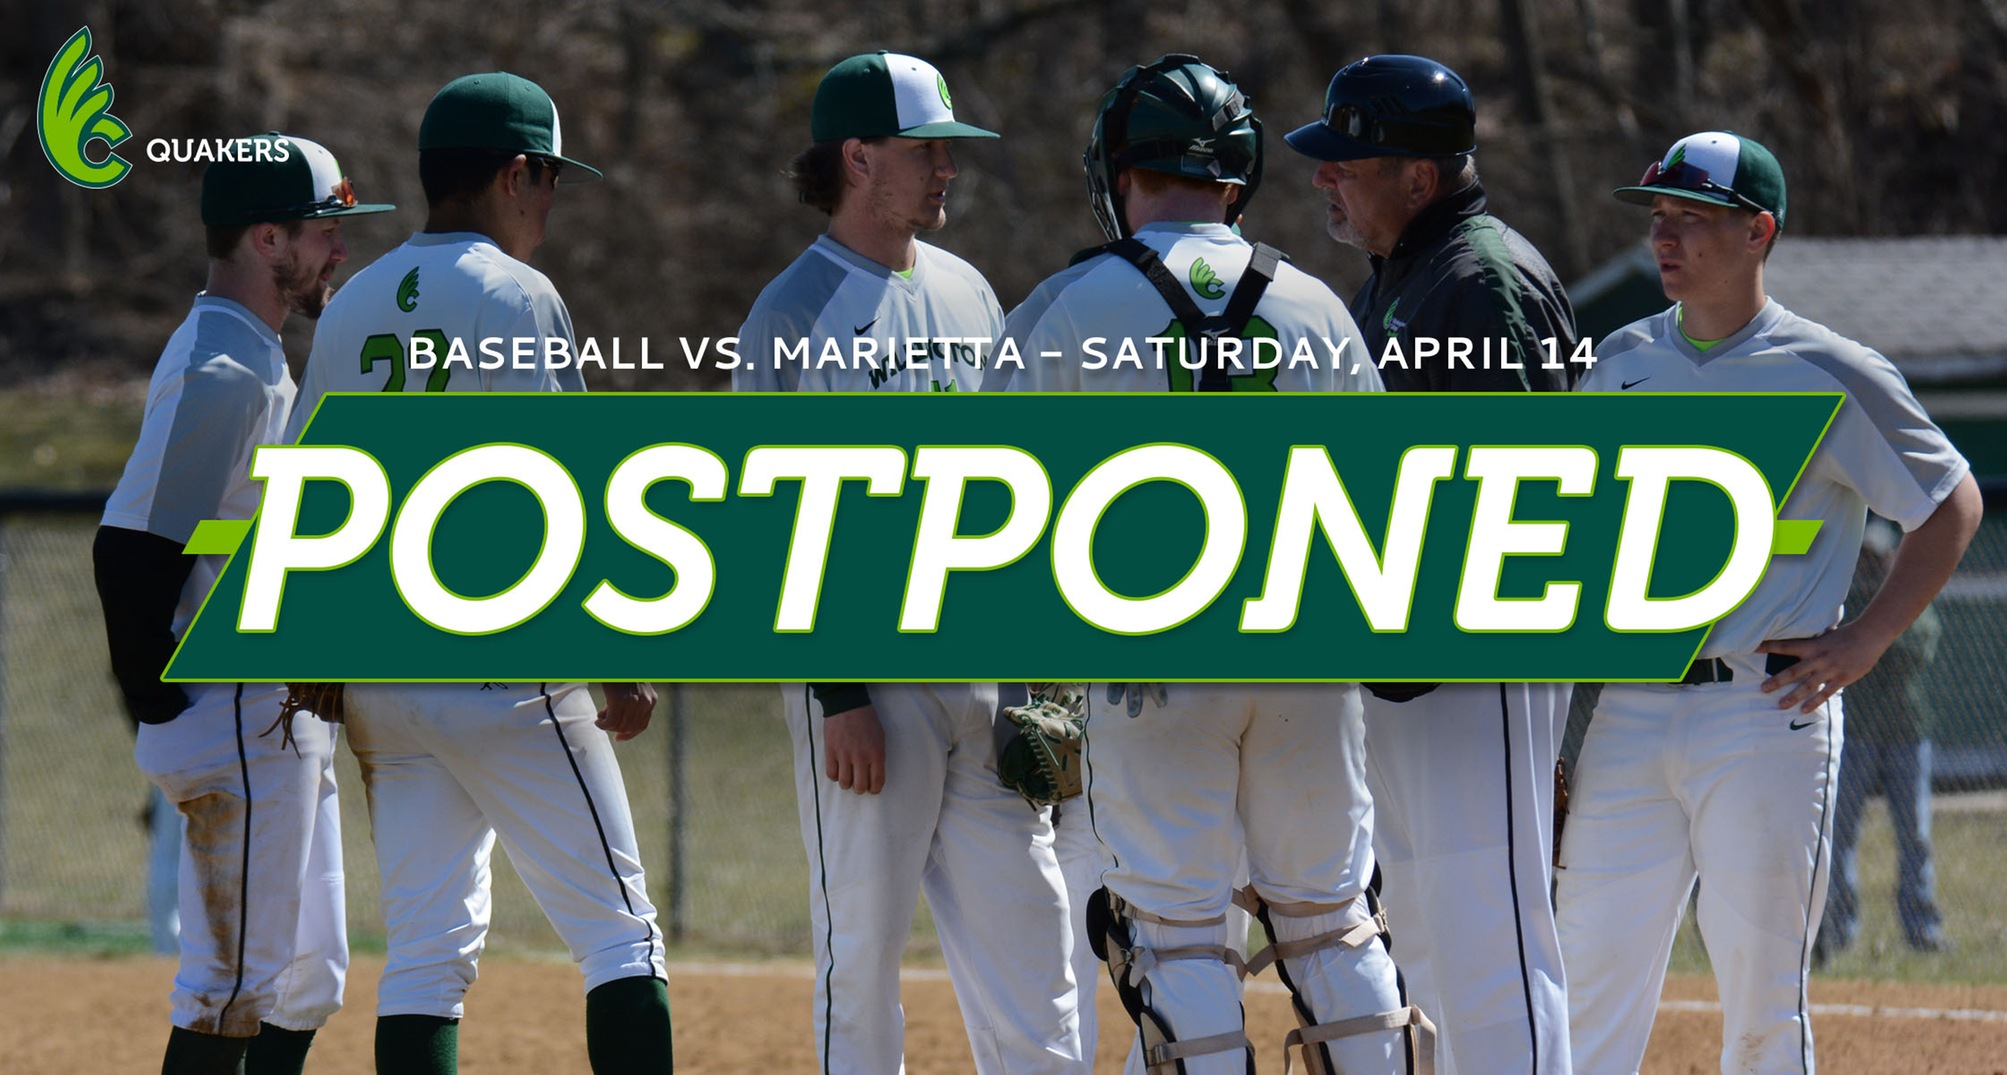 Baseball's Series With Marietta Postponed